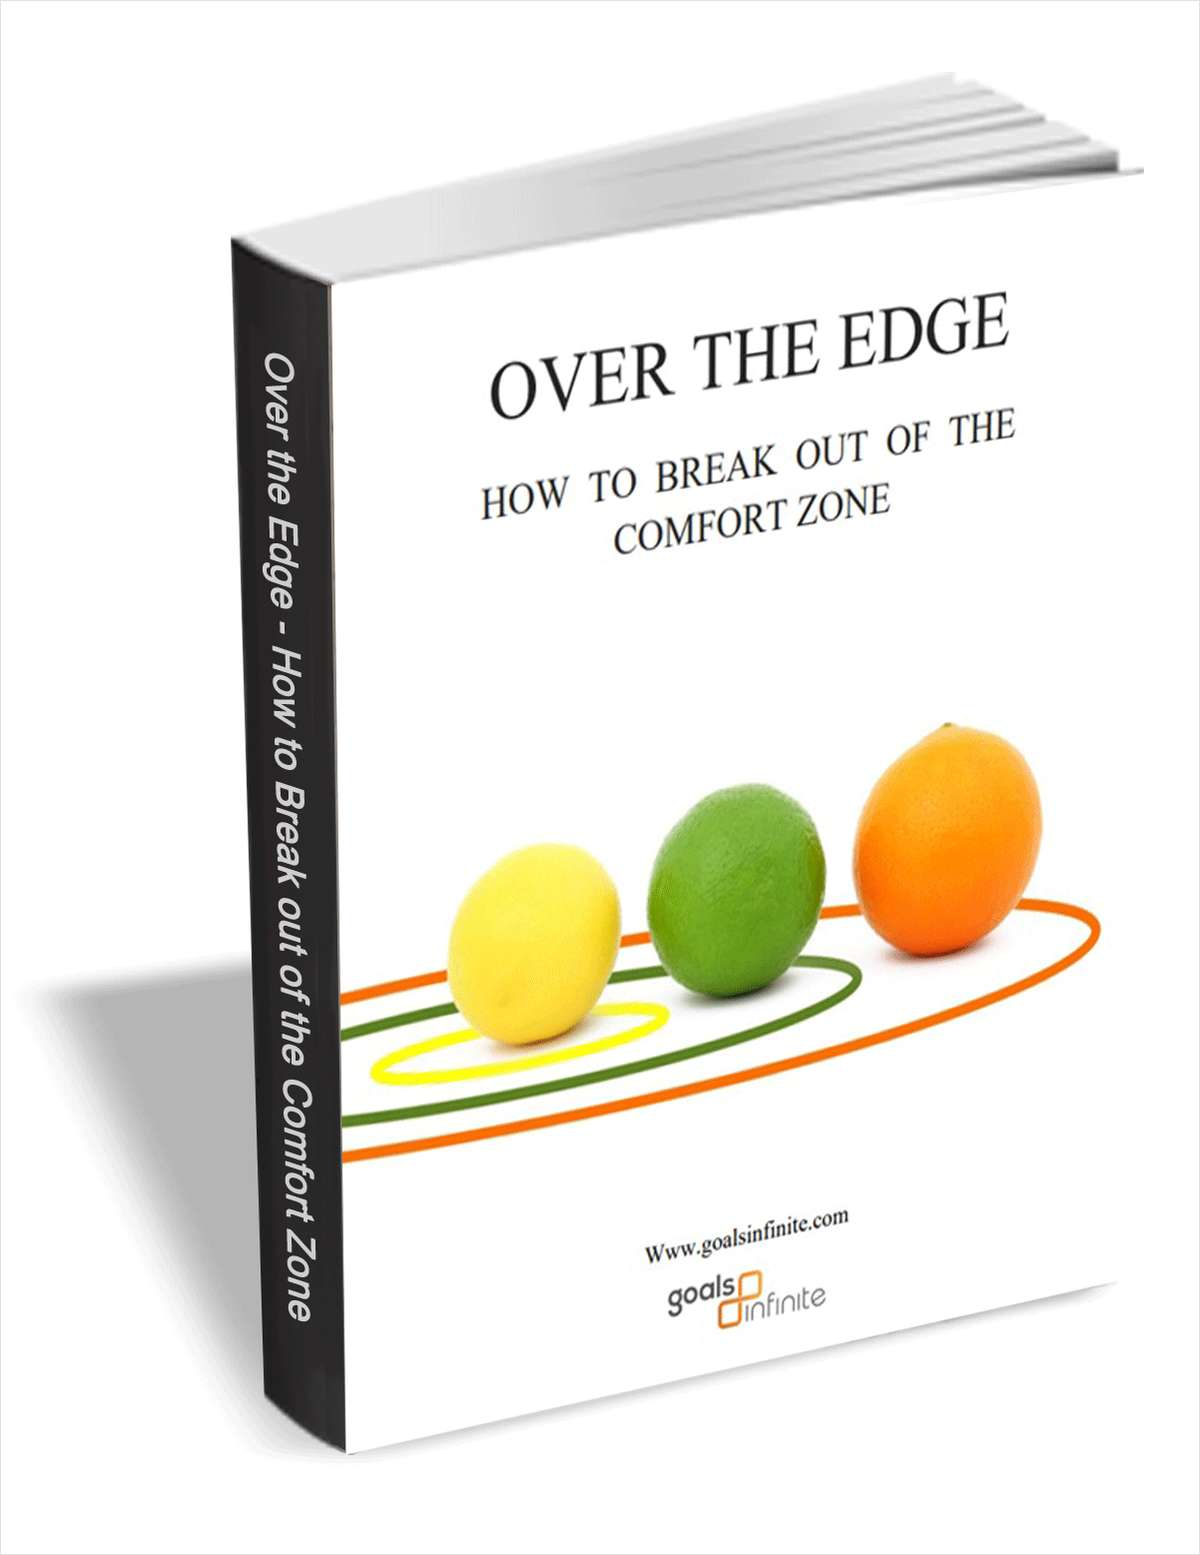 Over the Edge - How to Break Out of the Comfort Zone